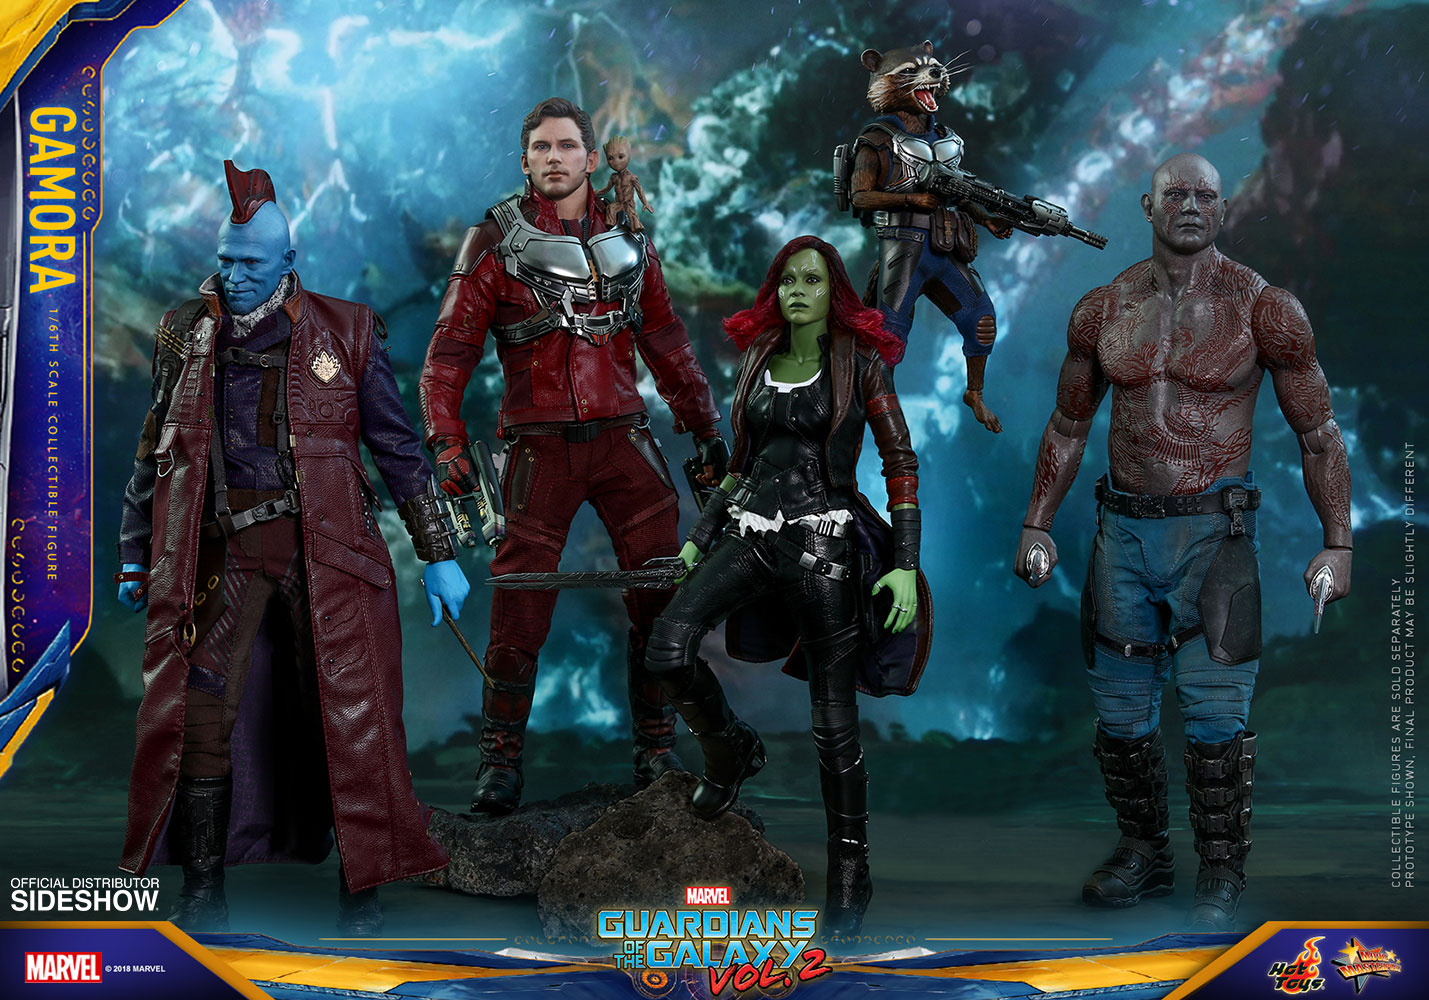 marvel-guardians-of-the-galaxy-vol2-gamora-sixth-scale-figure-hot-toys-903101-12